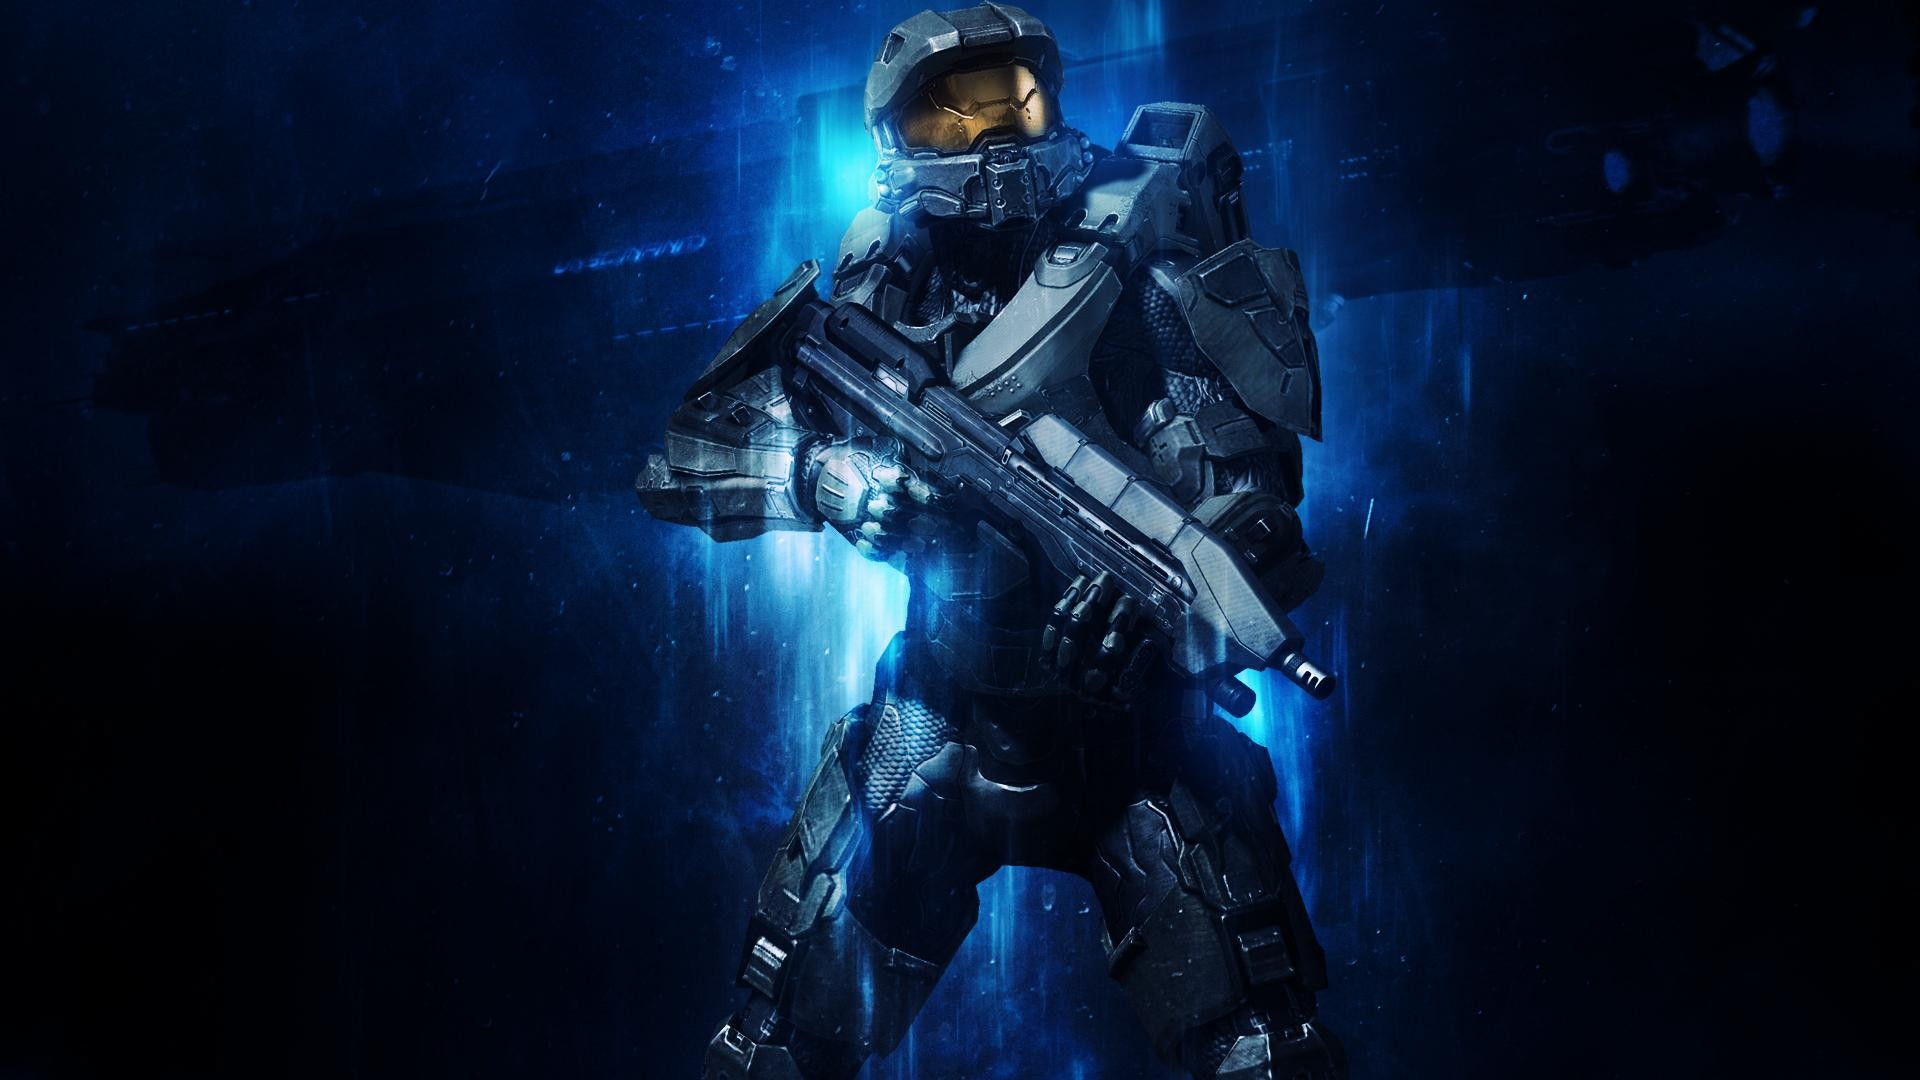 Halo-1920%C3%971080-High-Definition-Daily-Screens-